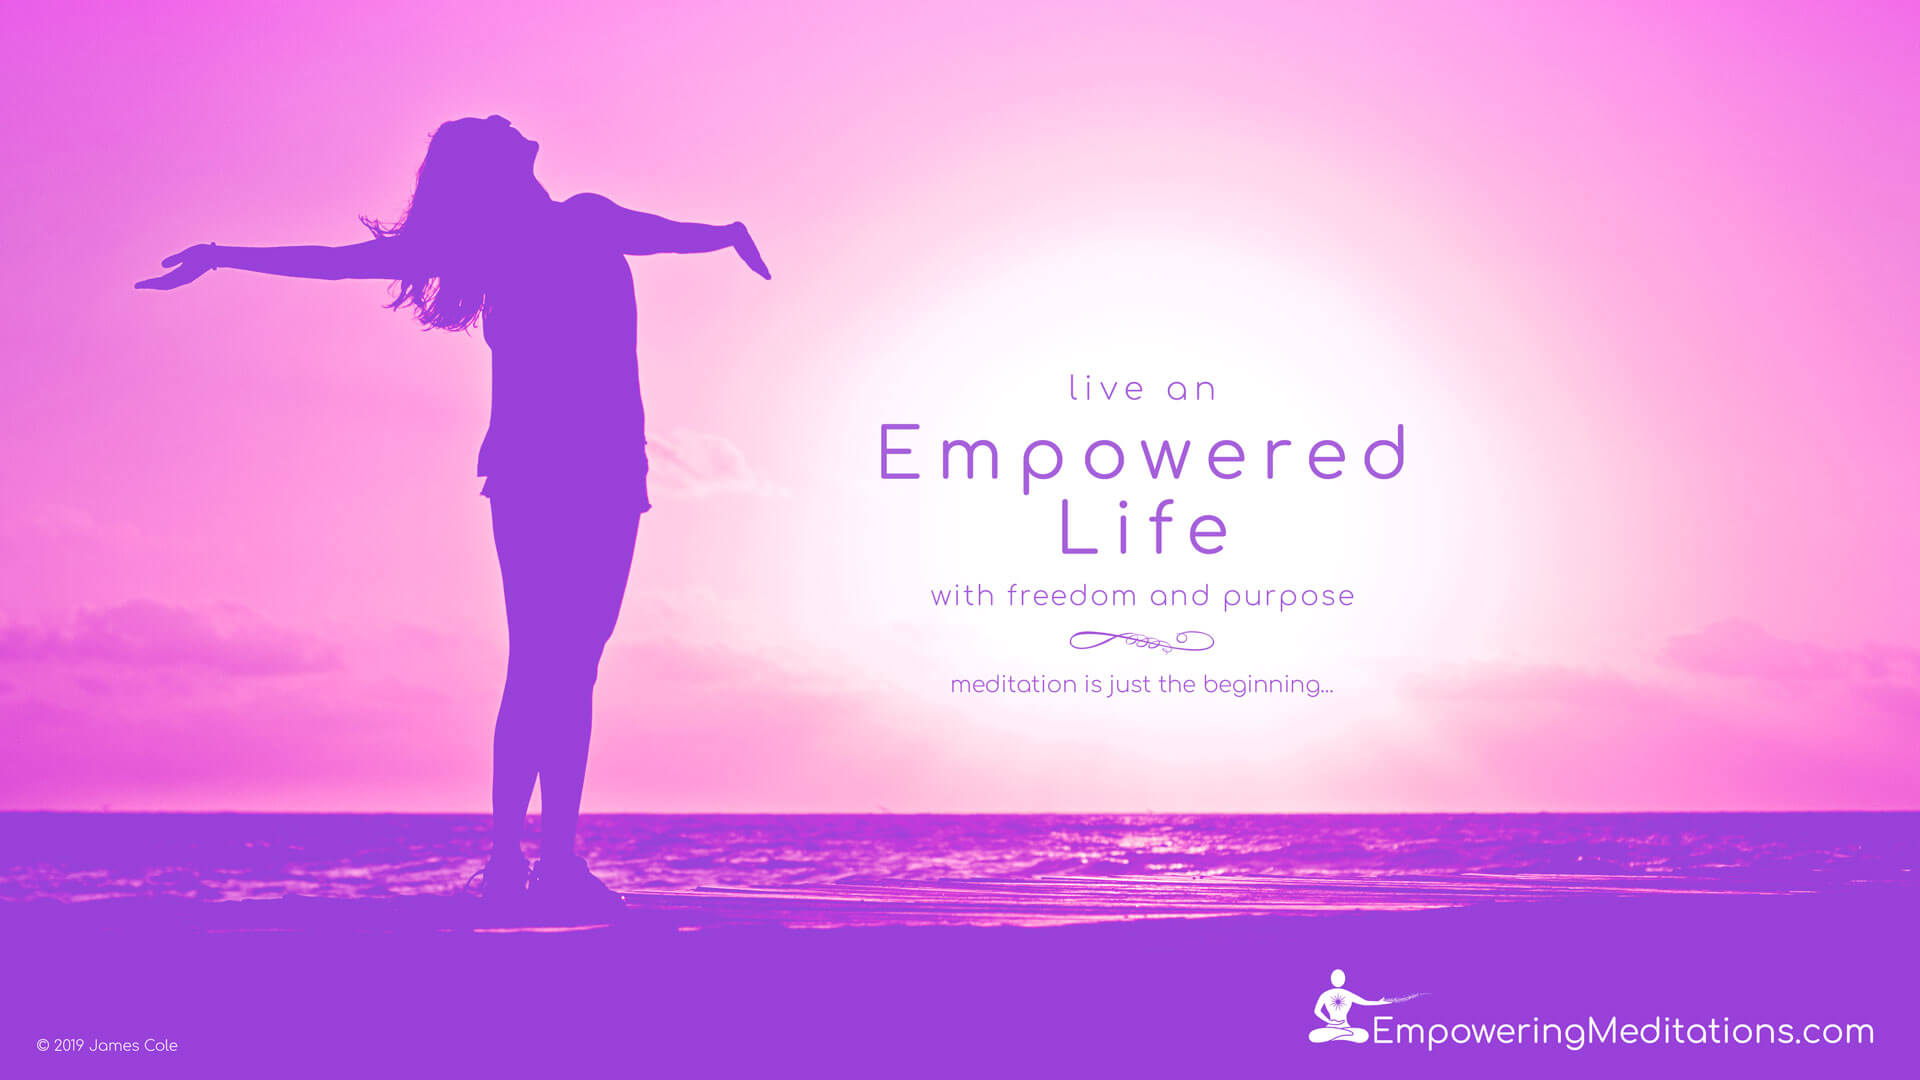 Live an Empowered Life with this online personal development program